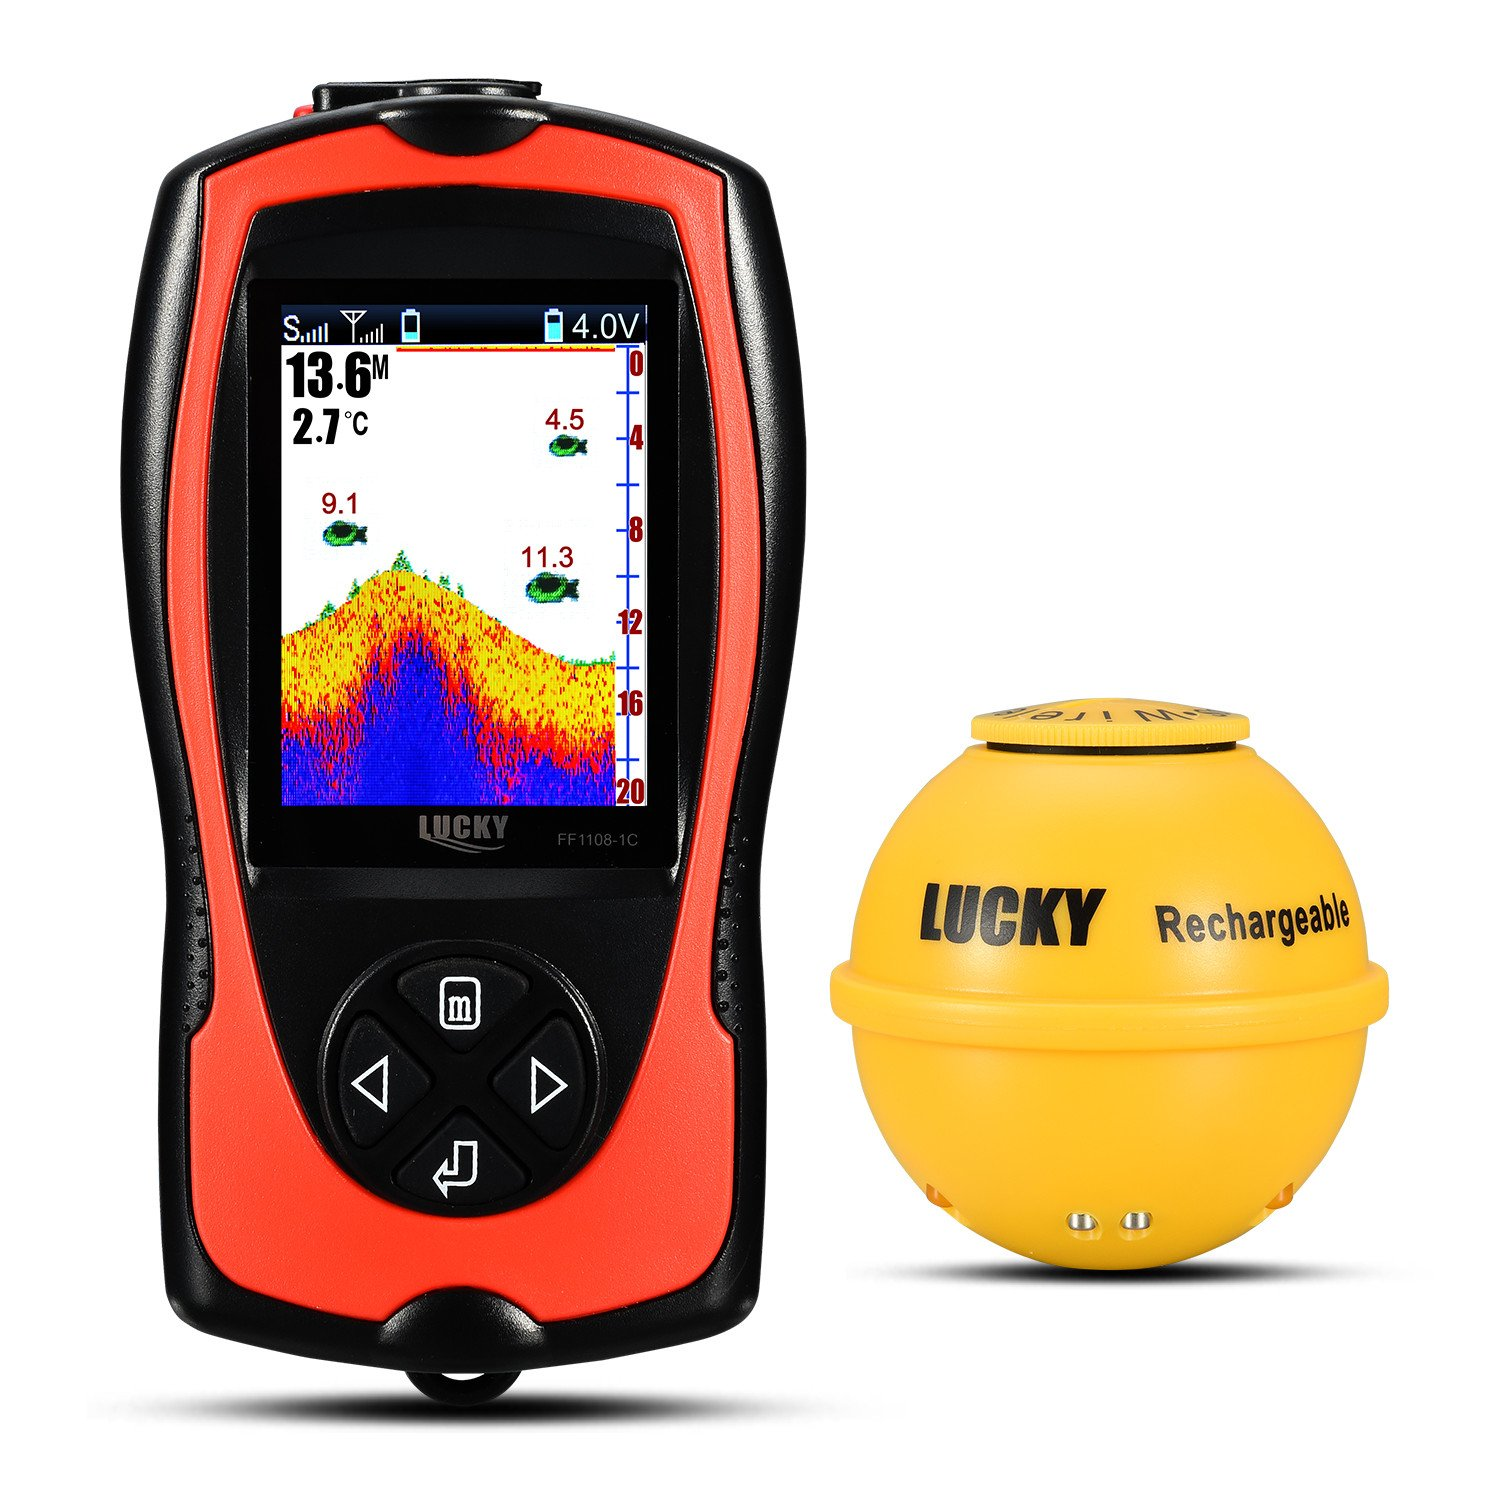 Lucky Portable Smart Fish Finder with High Definition LCD Display and Fish Attractive lamp for Shore Fishing